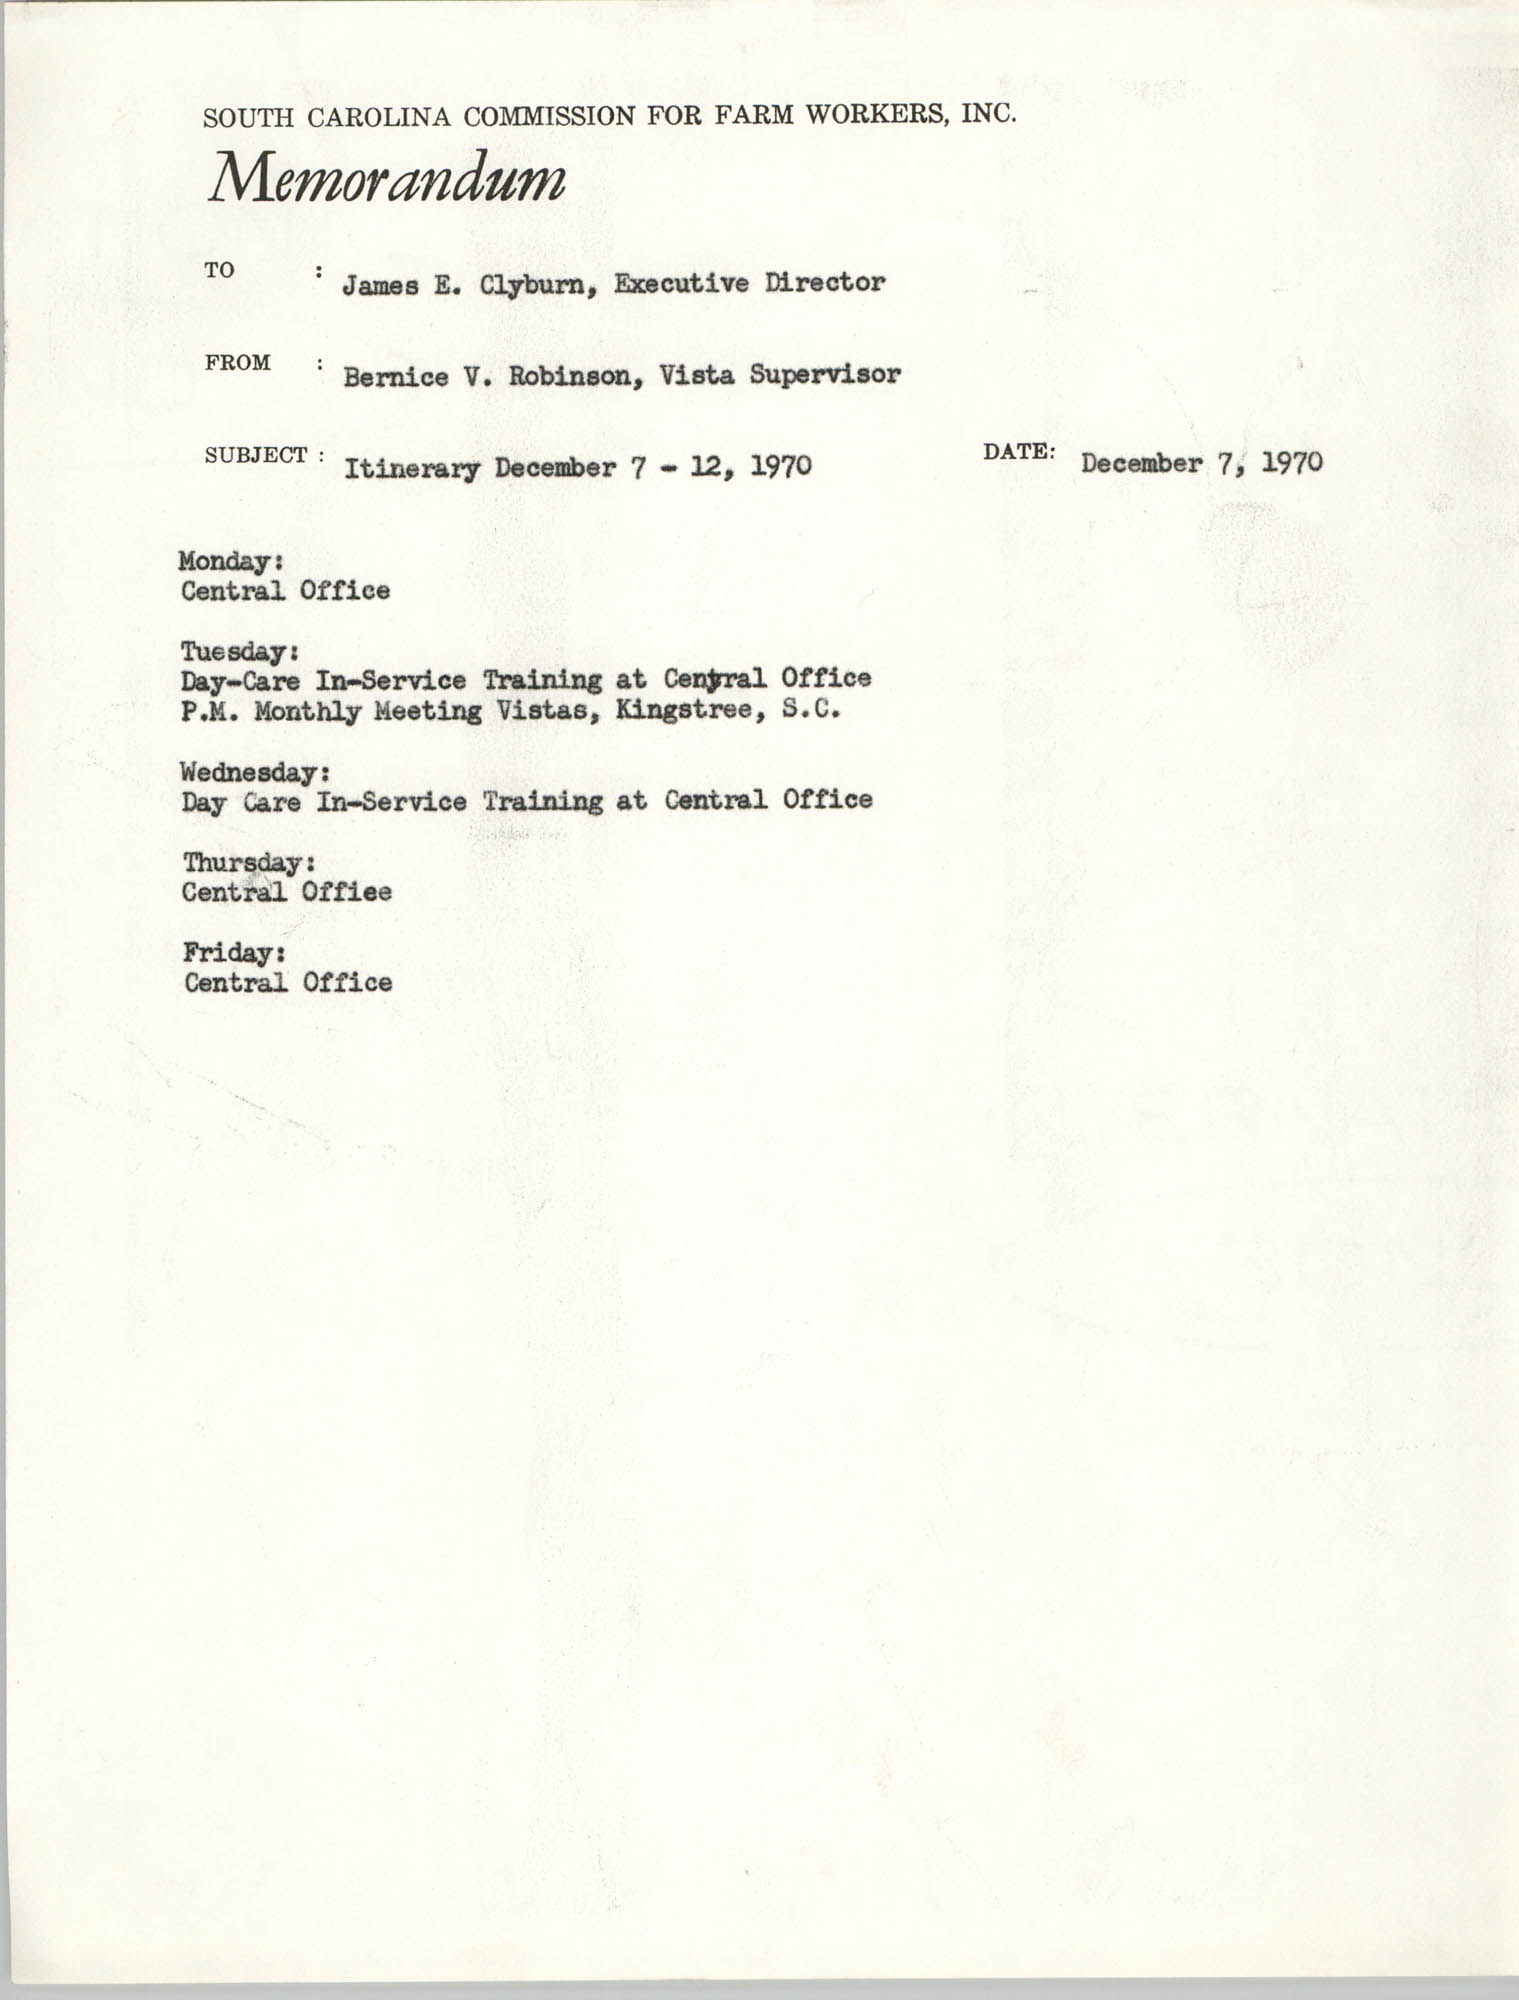 Memorandum from Bernice V. Robinson to James E. Clyburn, December 7, 1970